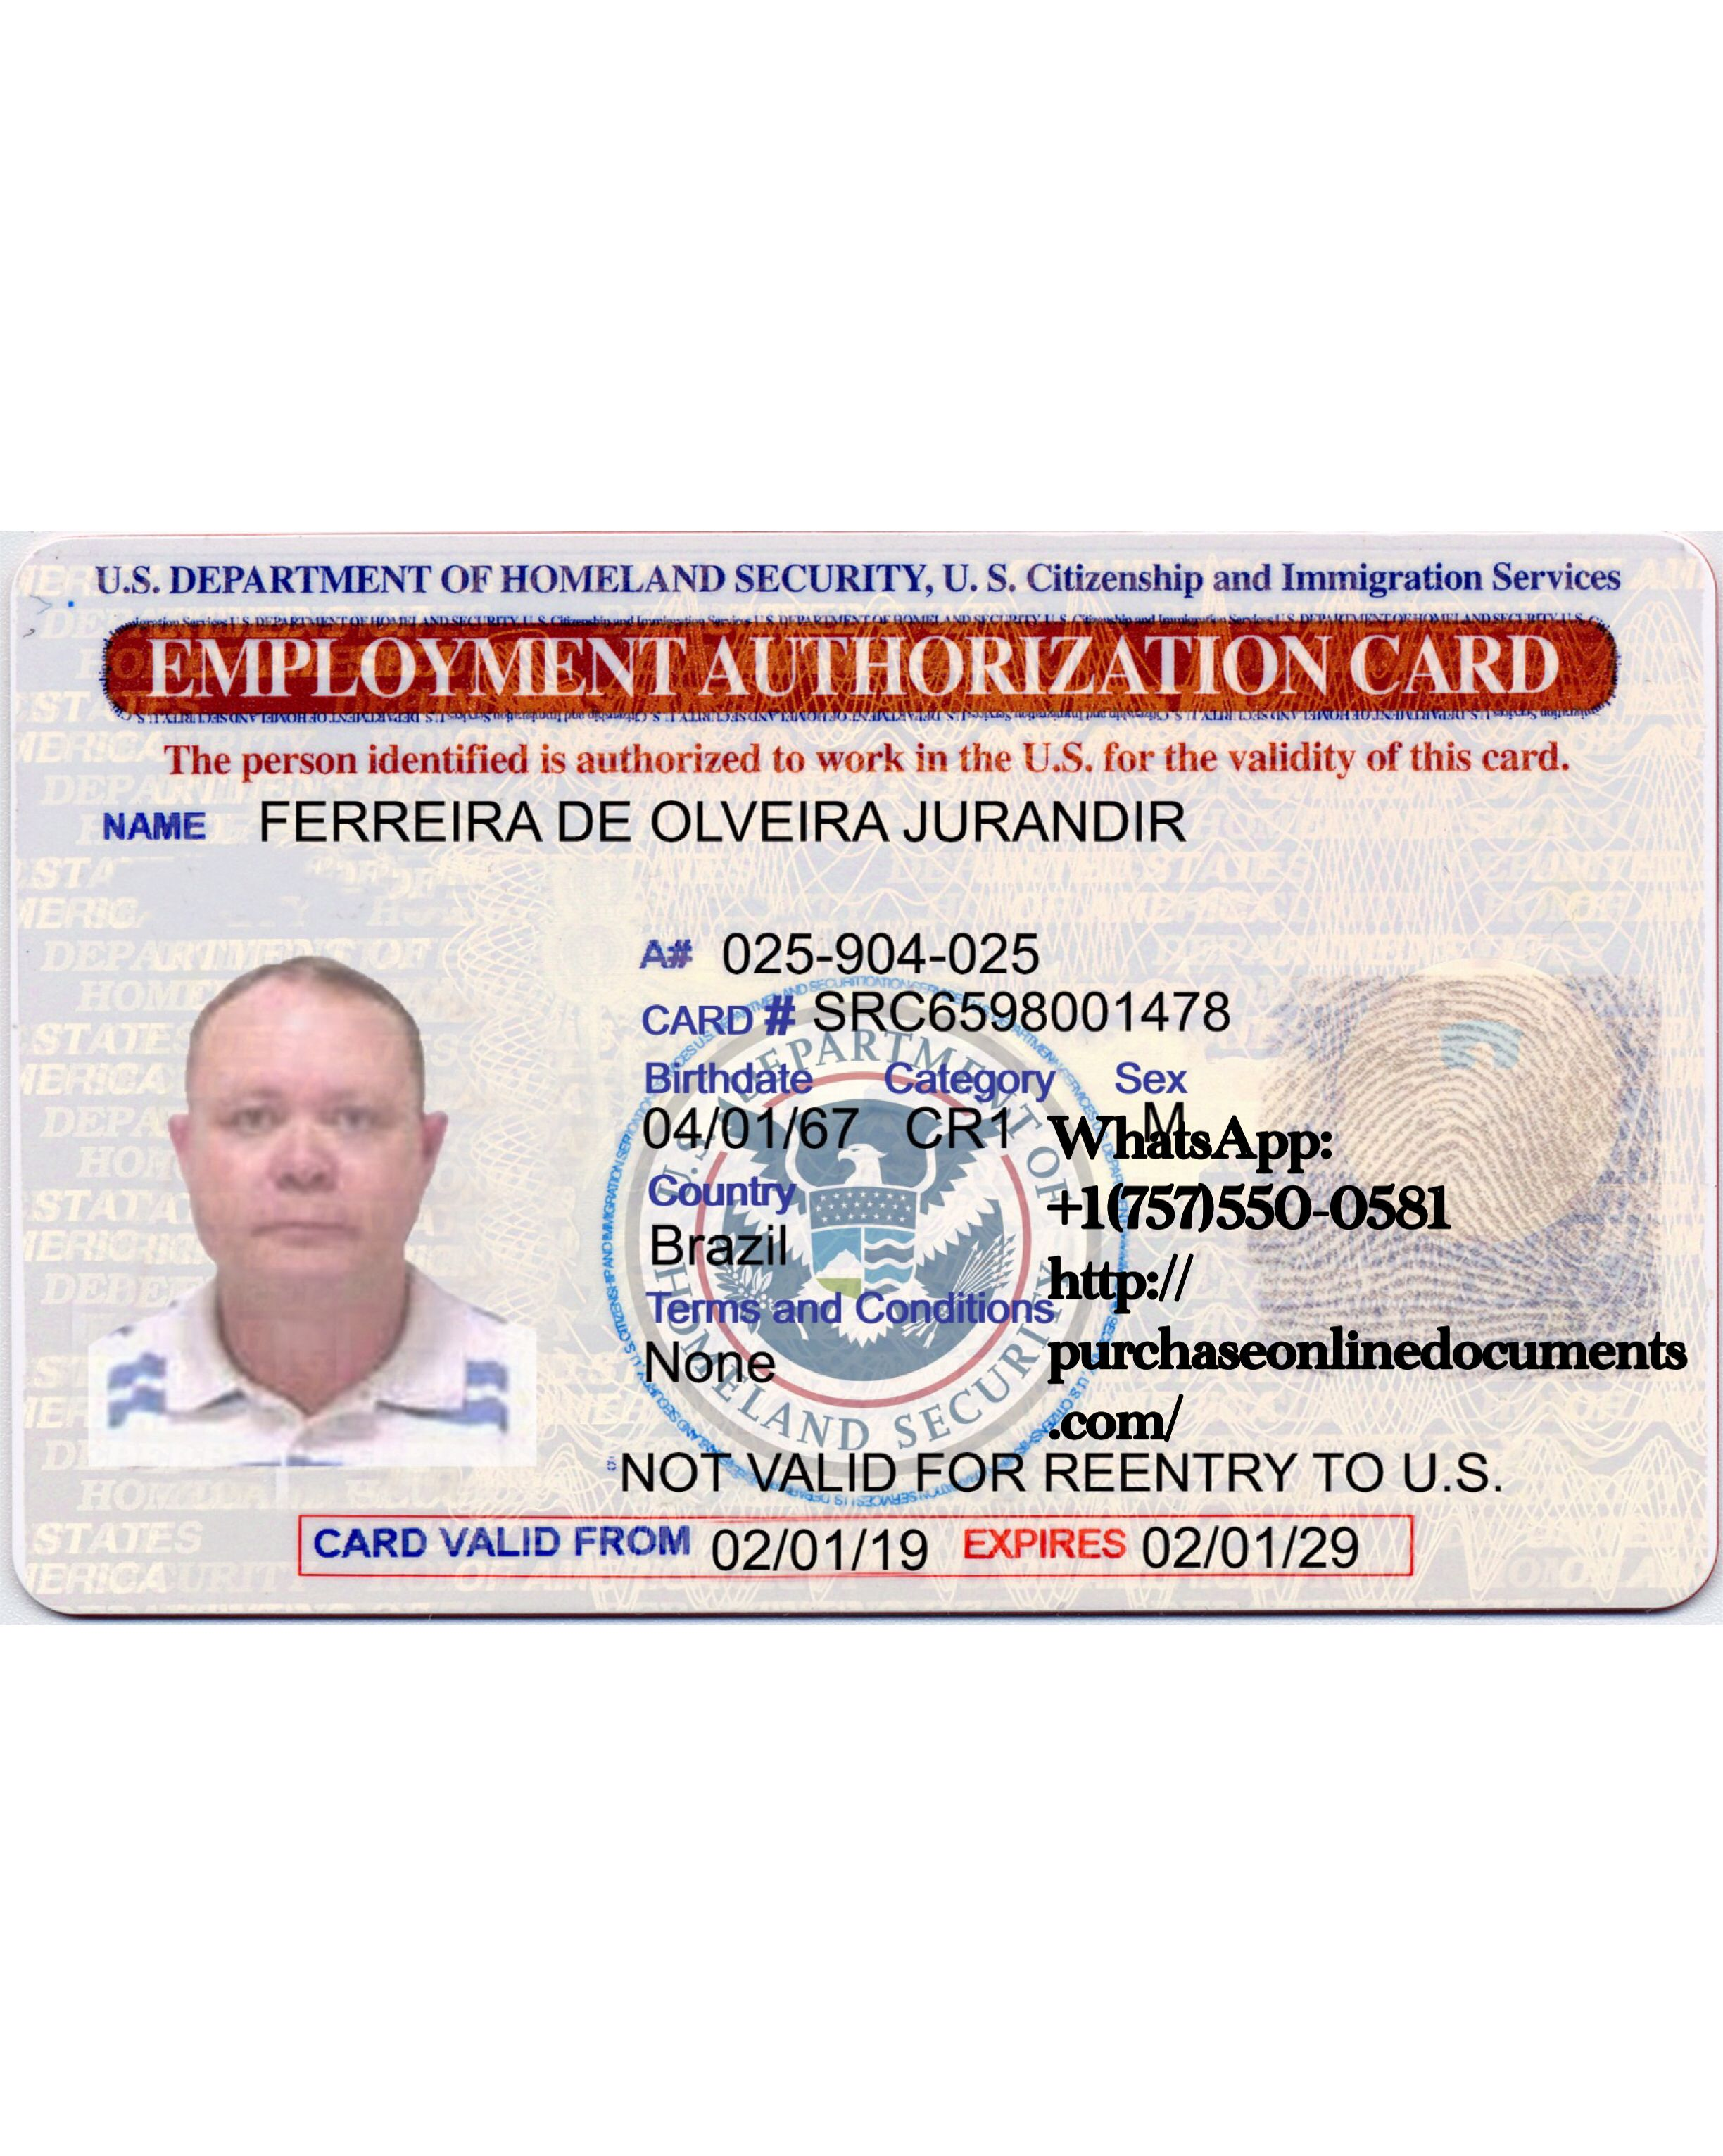 802d0e8eff3f24d3ac4c7f89b7acca19 - How Long Does It Take To Get Employment Authorization Card